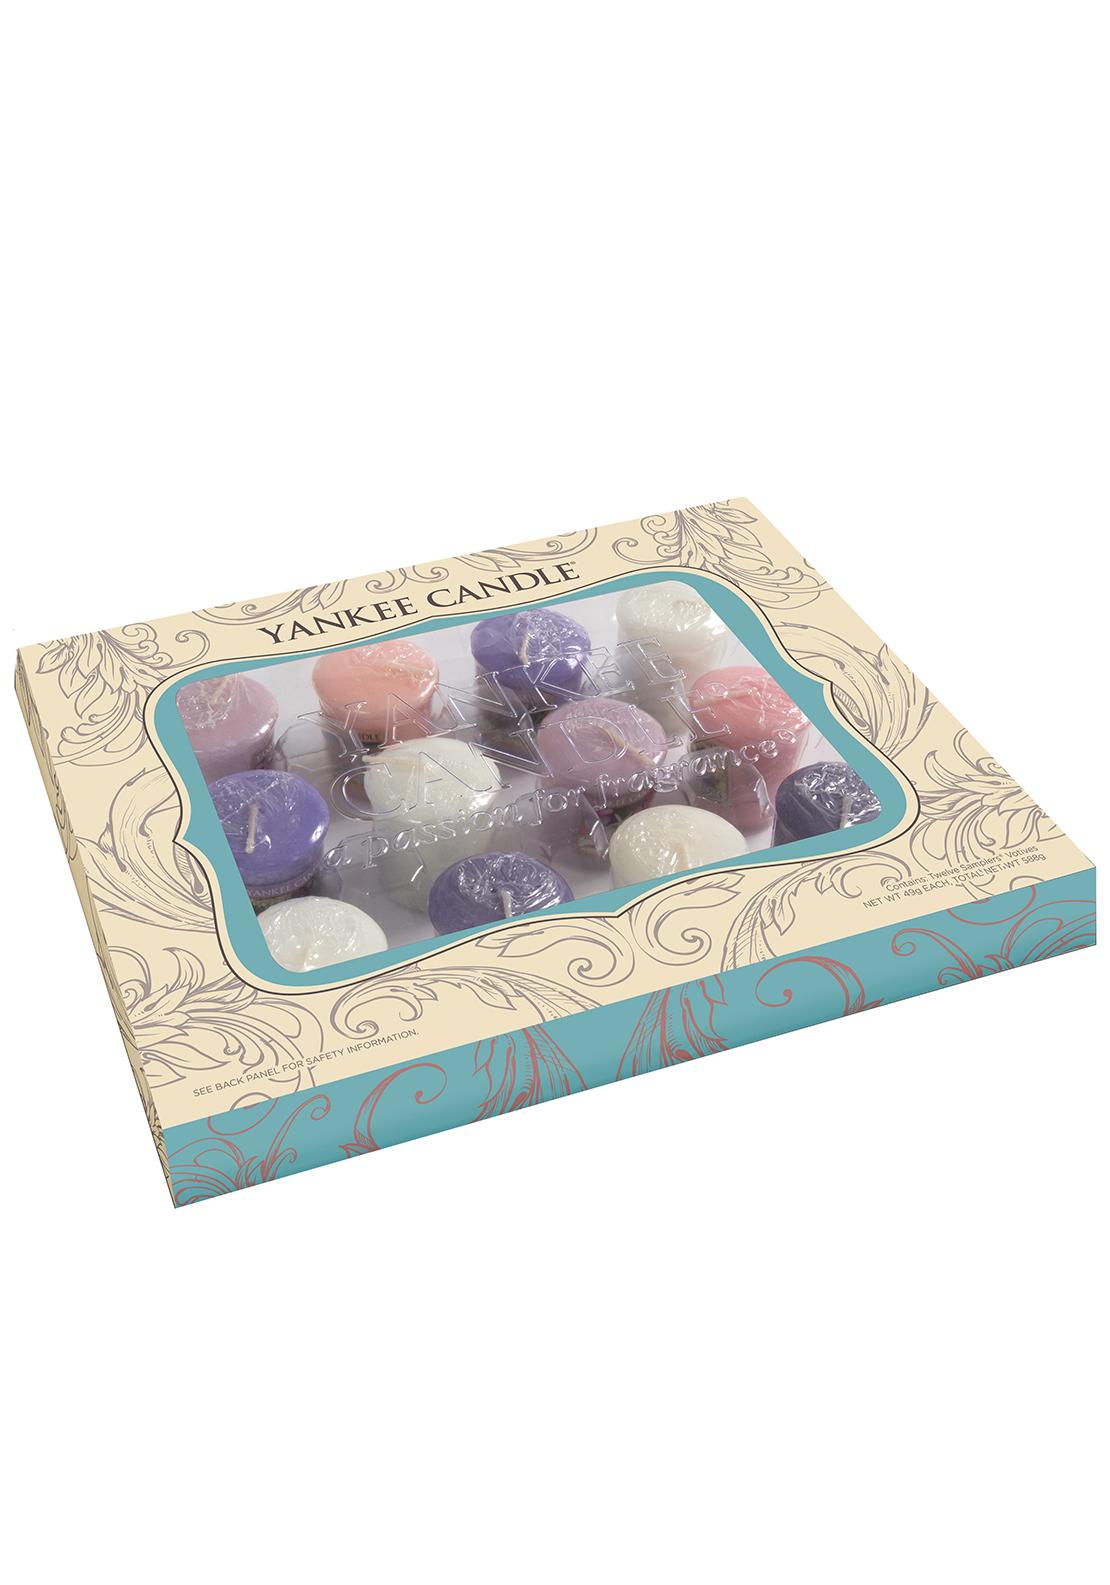 Yankee Candle Everyday, 12 Votives Blister Pack